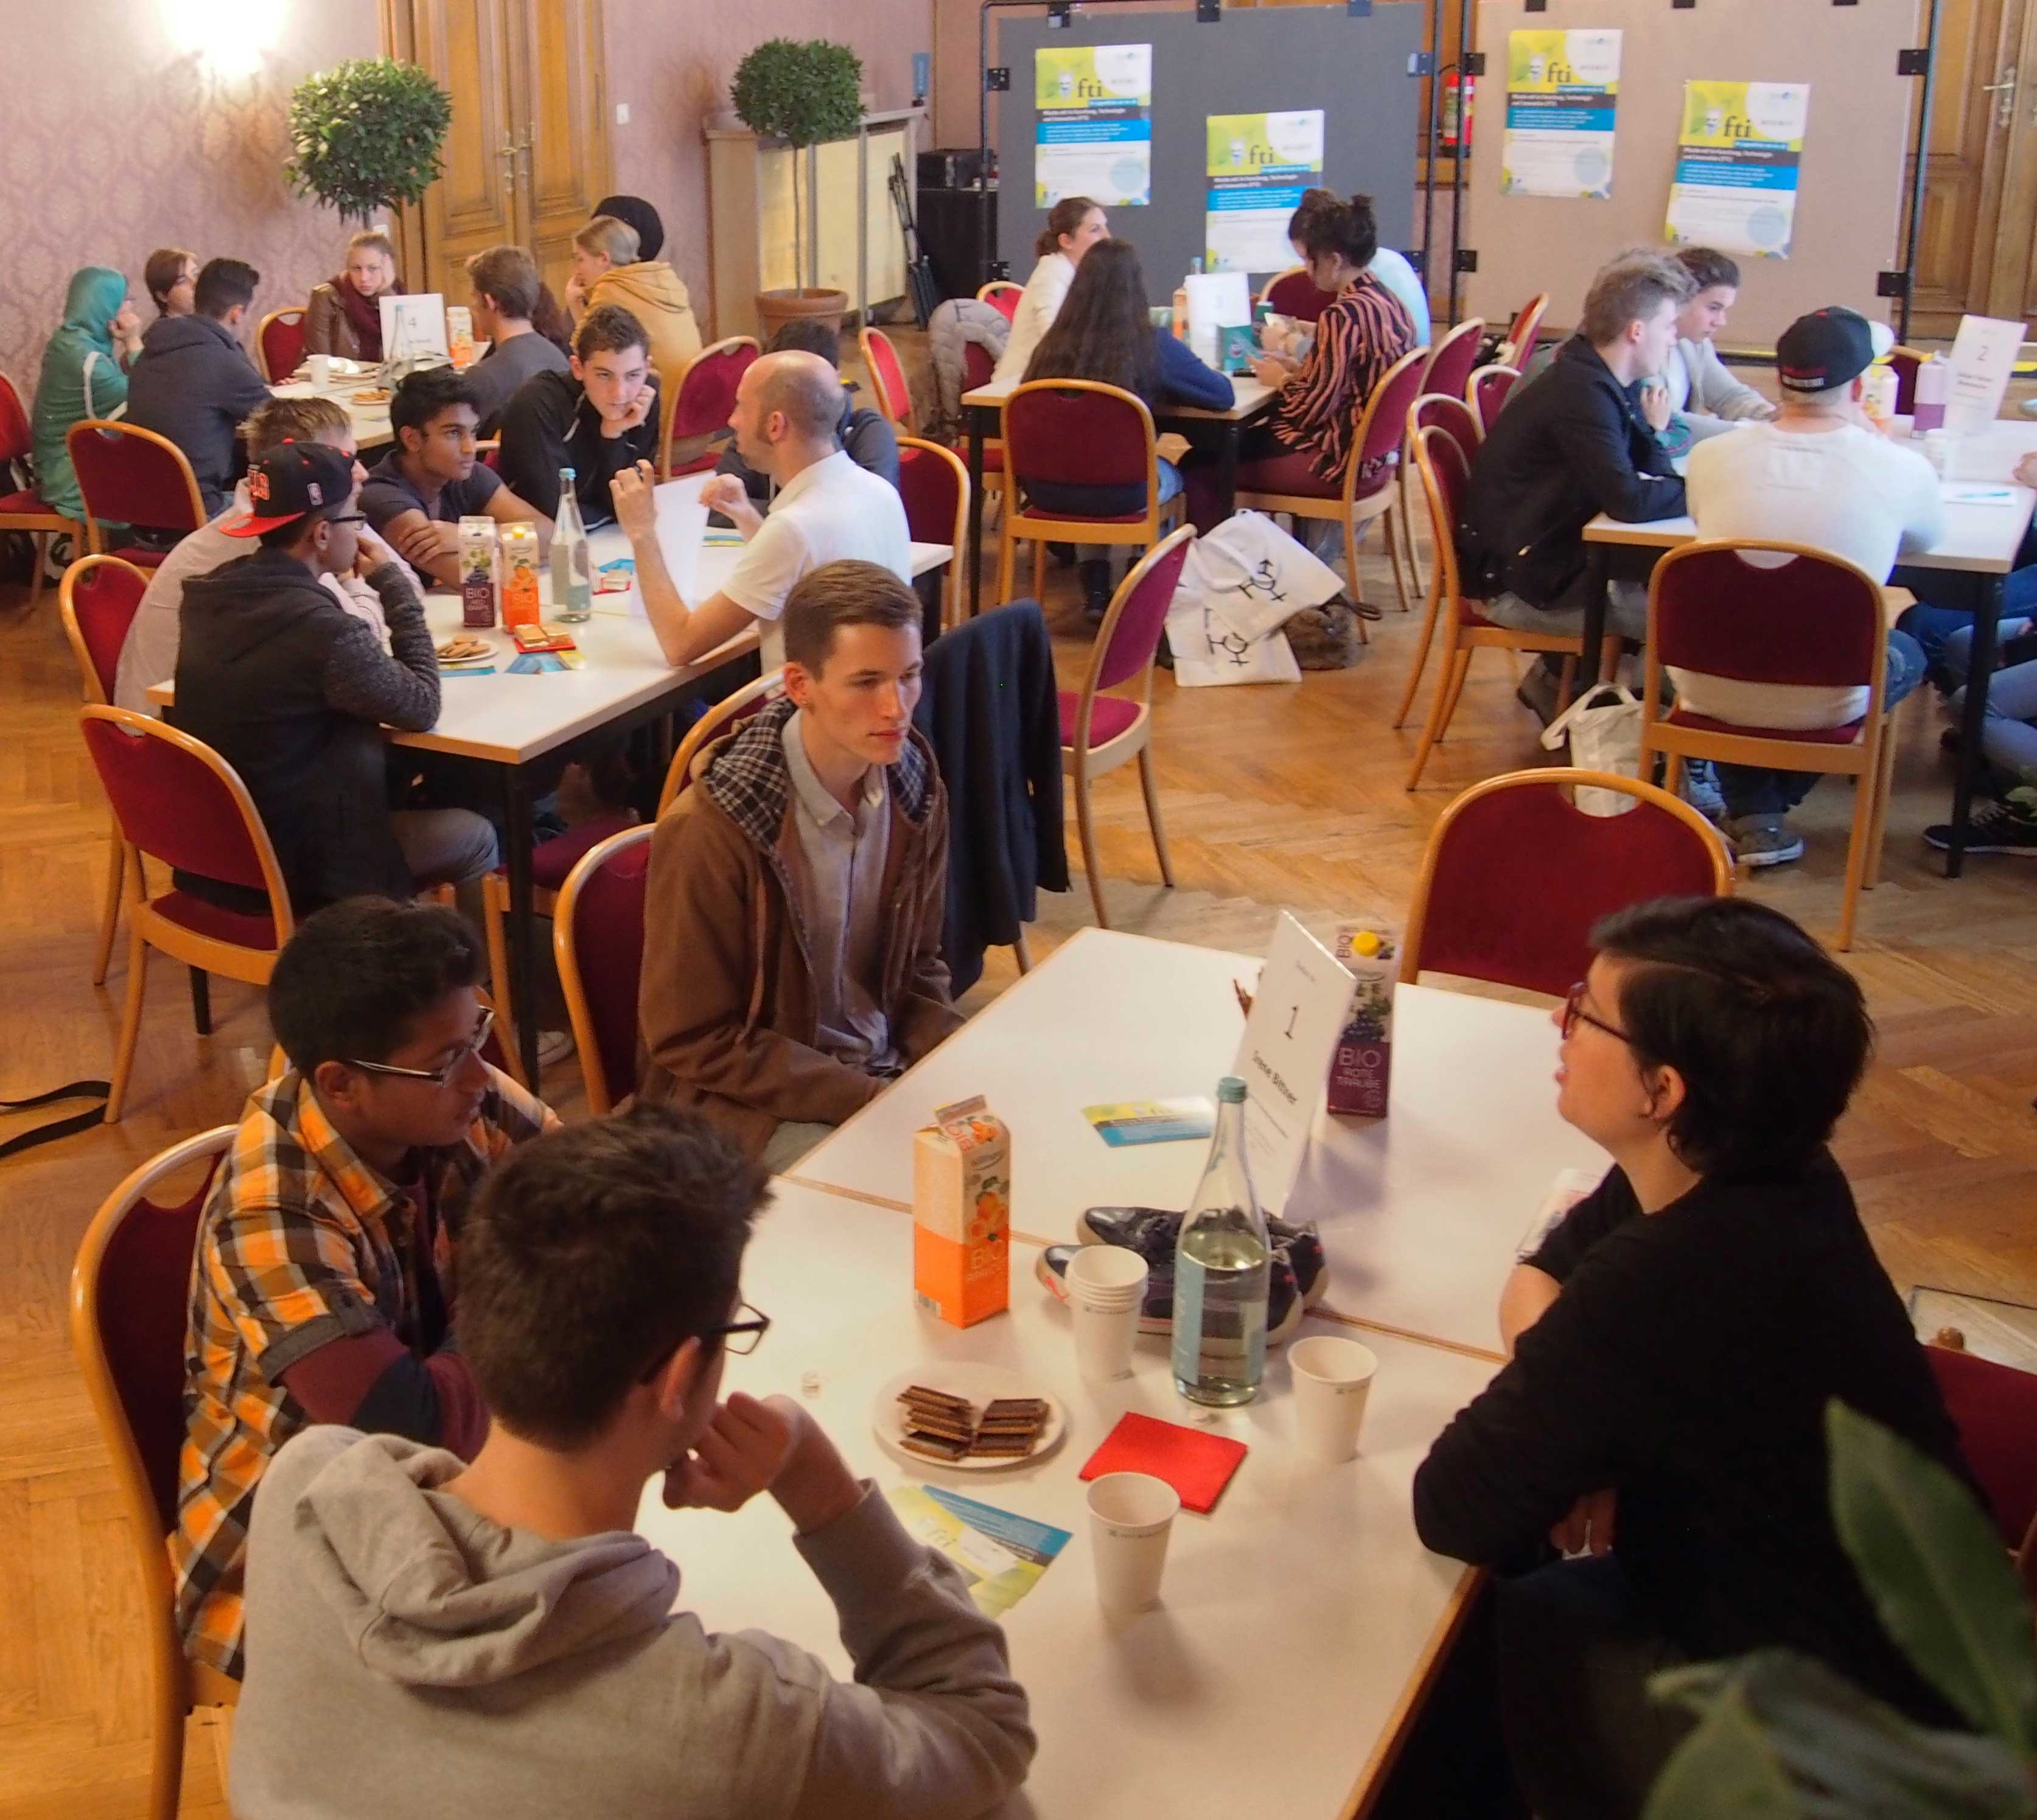 matchmaking oulu 201 Richardson rfpd roving networks/microchip s sage millimeter sdt technology semikron sierra wireless skyworks solutions, inc stmicroelectronics sv microwave t tagore.